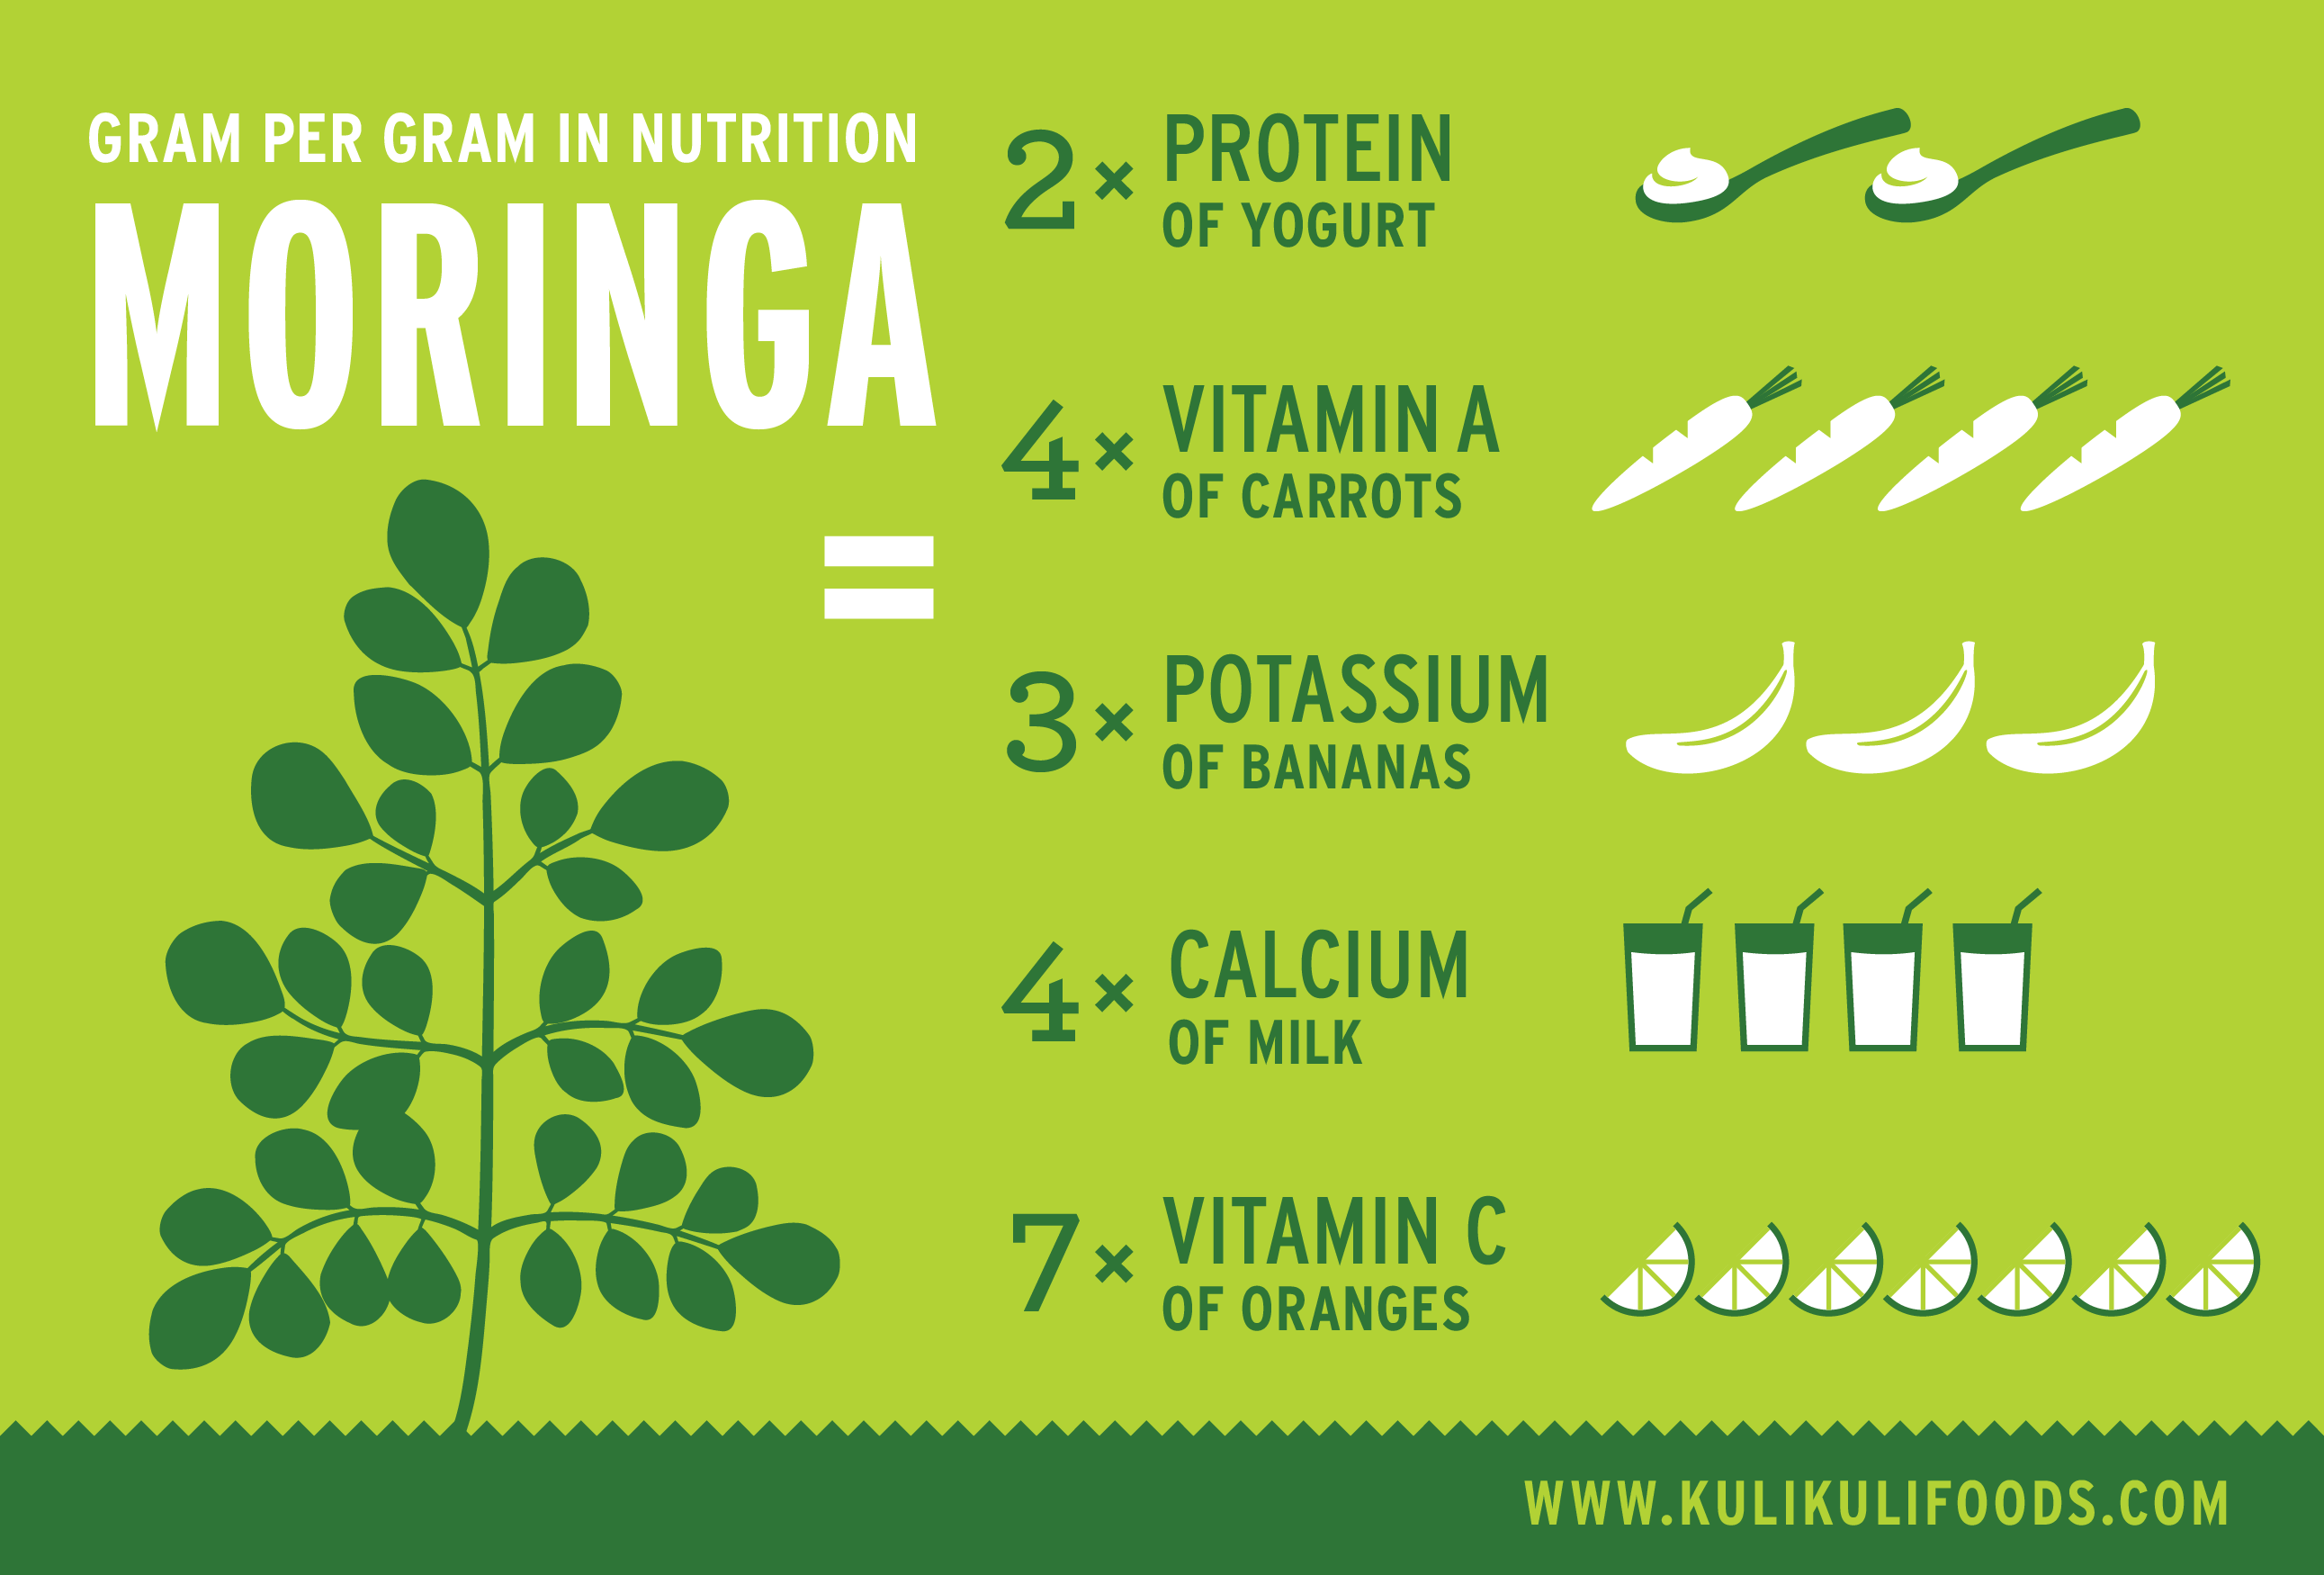 8 Of The Best Moringa Powder Tea Capsules Brands Moringa